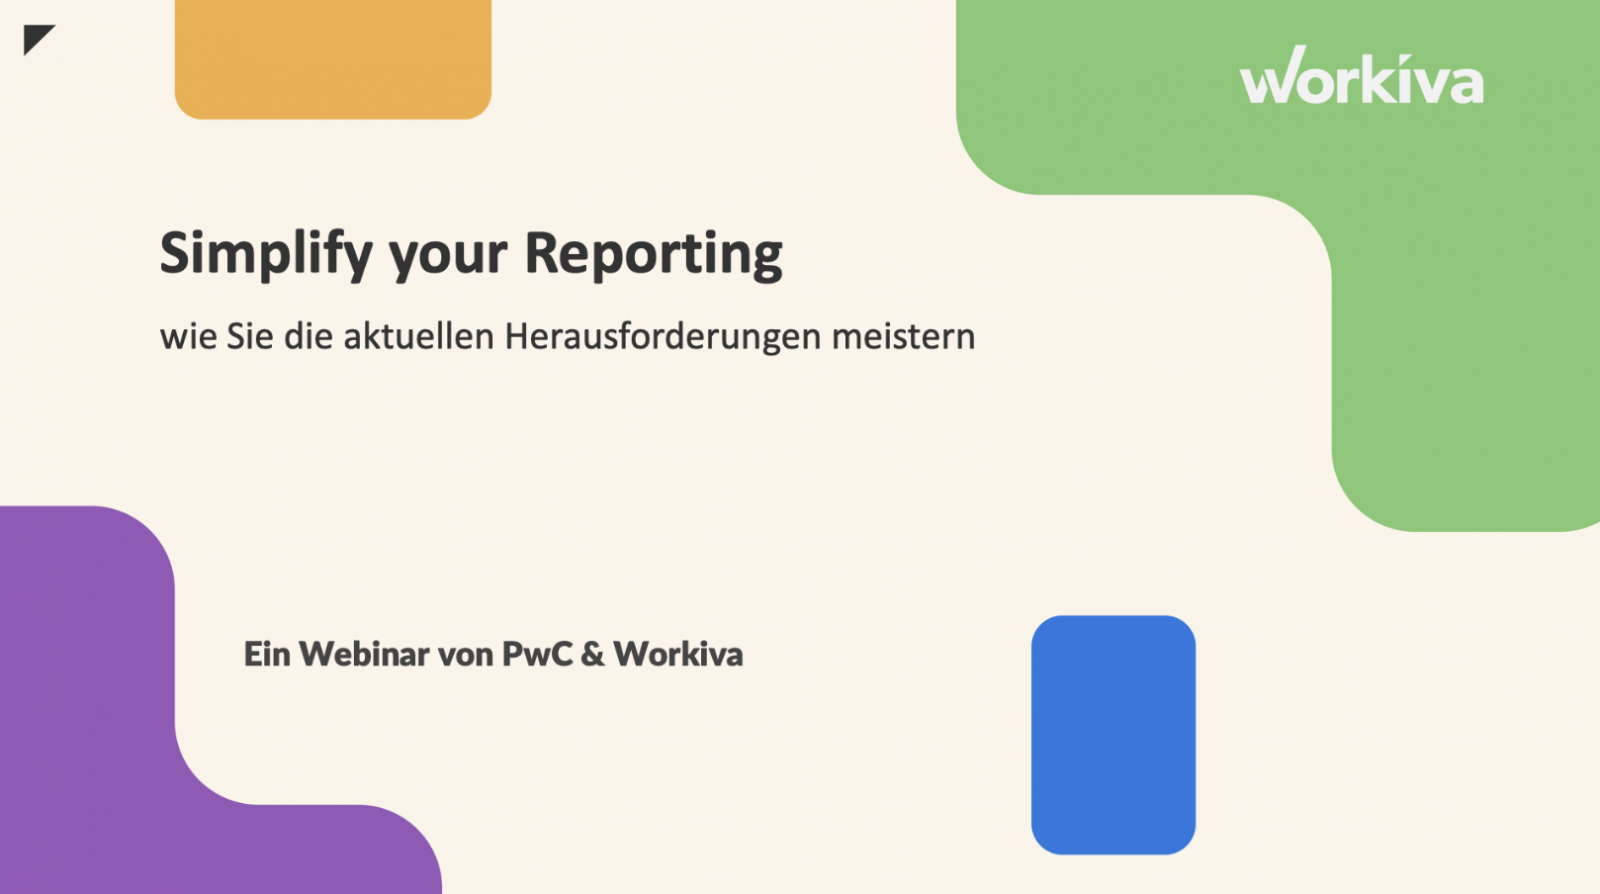 Simplify your Reporting